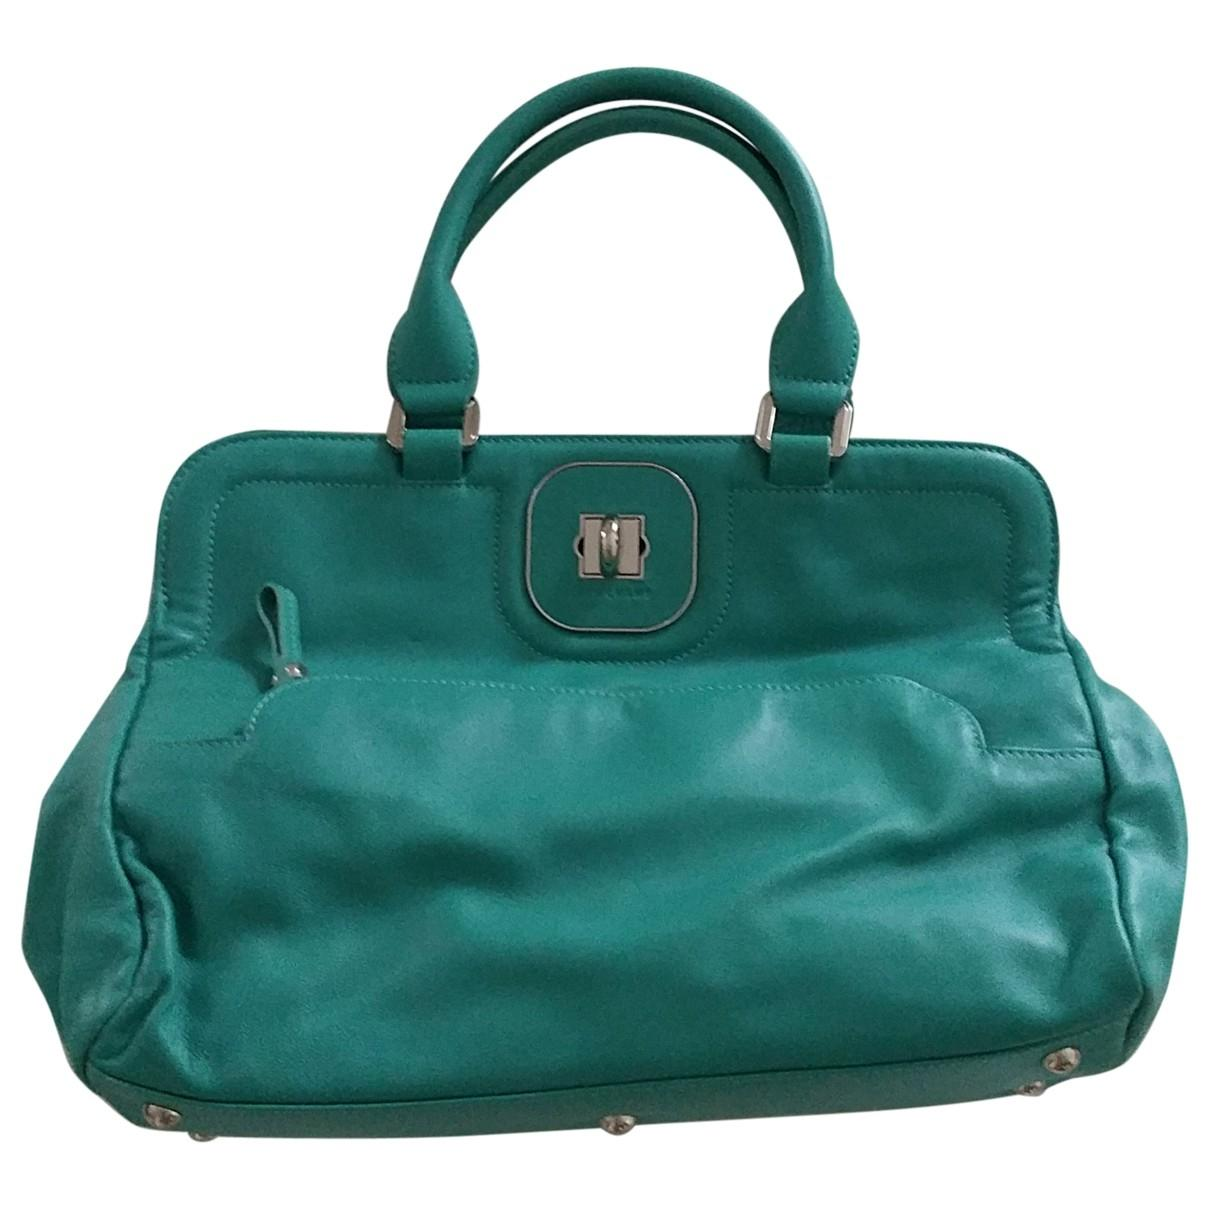 Lyst - Longchamp Pre-owned Gatsby Turquoise Leather Handbags in Blue ad7745610d747